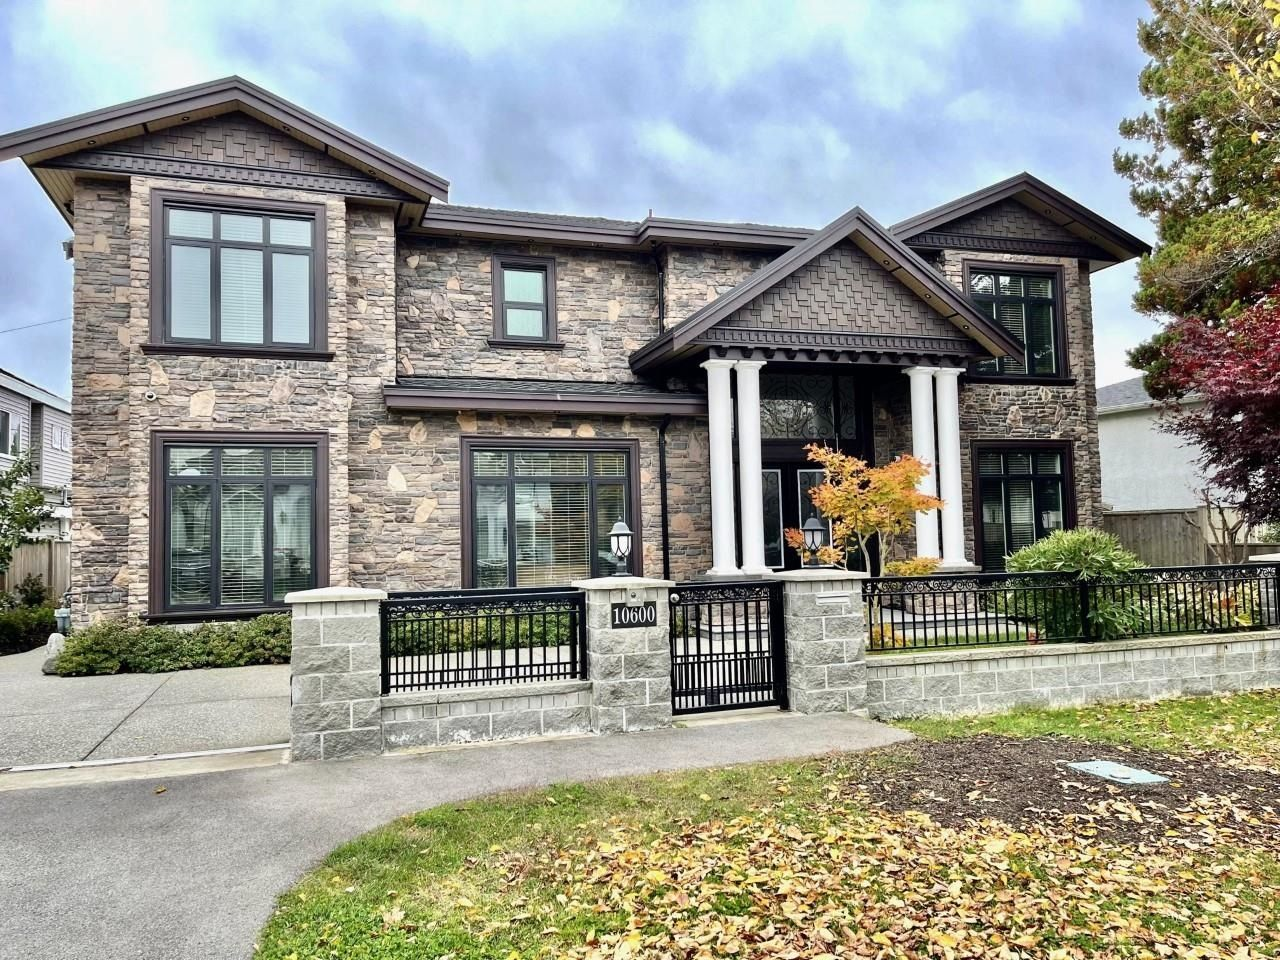 Main Photo: 10600 DENNIS Crescent in Richmond: McNair House for sale : MLS®# R2624860